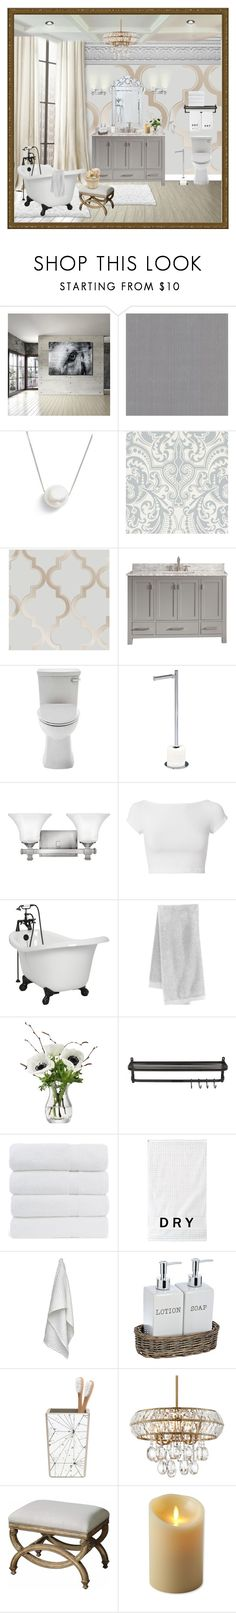 """""""Simple Elegance"""" by fowlerteetee ❤ liked on Polyvore featuring interior, interiors, interior design, home, home decor, interior decorating, Ready2hangart, Brewster Home Fashions, Chan Luu and White Label"""